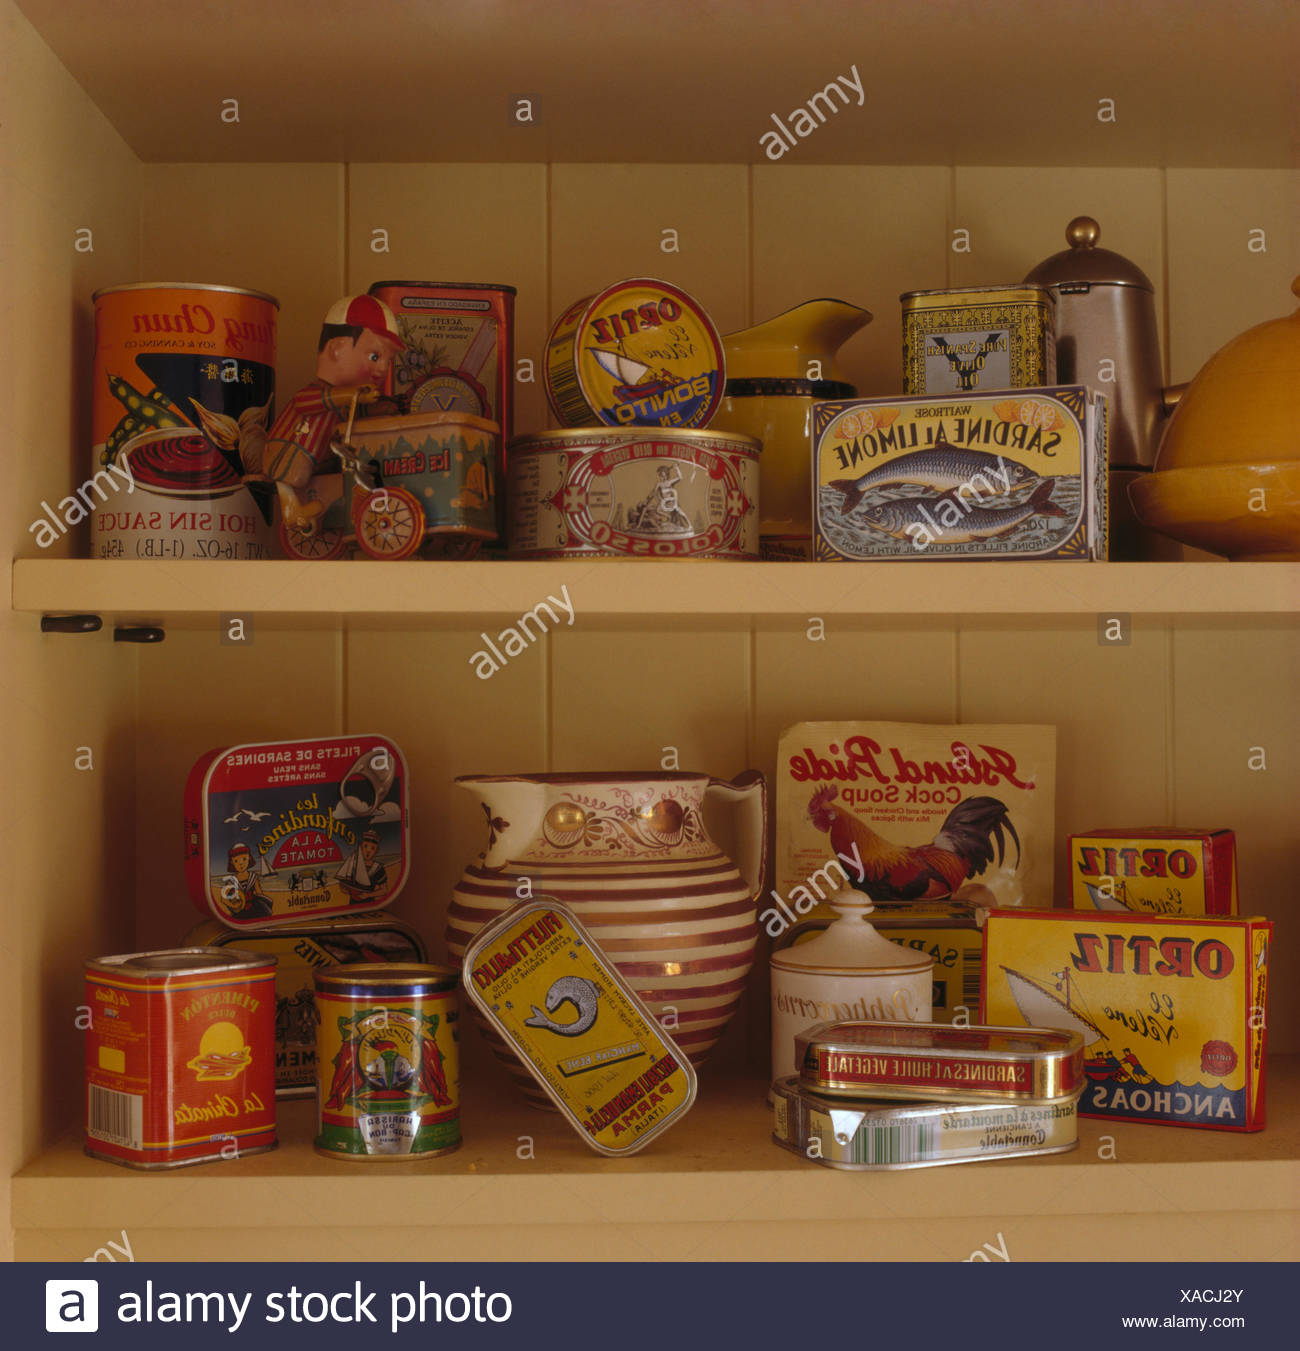 Close-up of a collection of vintage tins of food on shelves - Stock Image